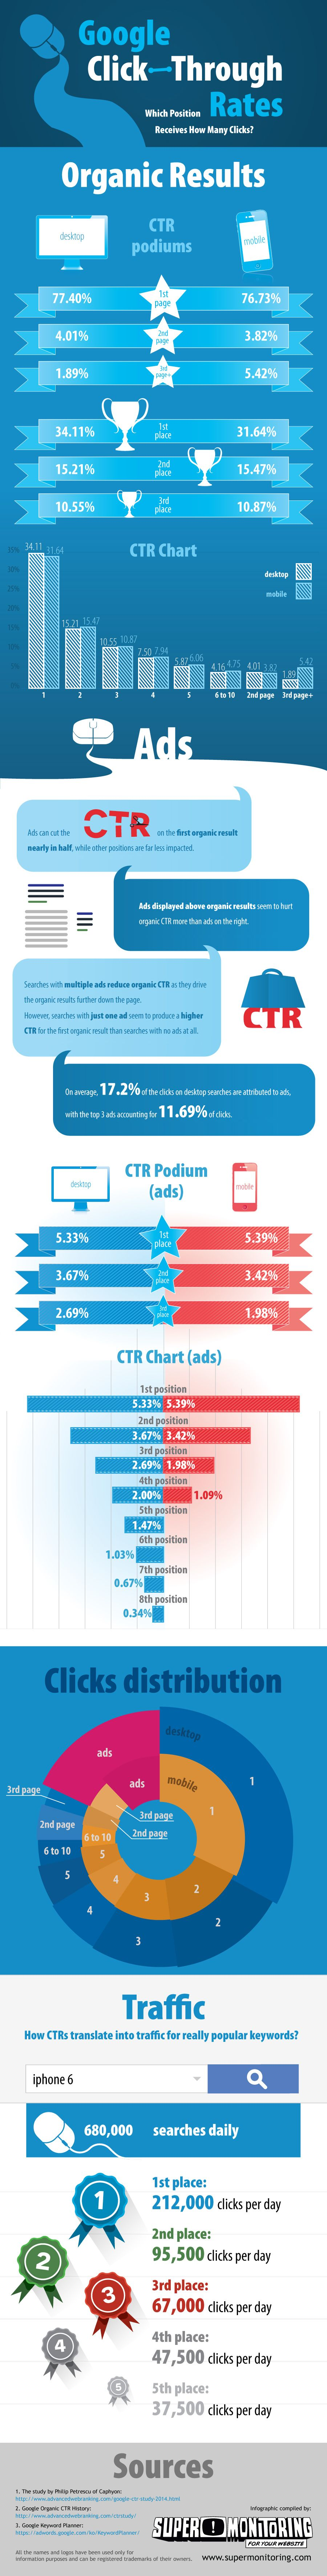 Google Click-Through Rates Which Position Receives How Many Clicks? #infographic